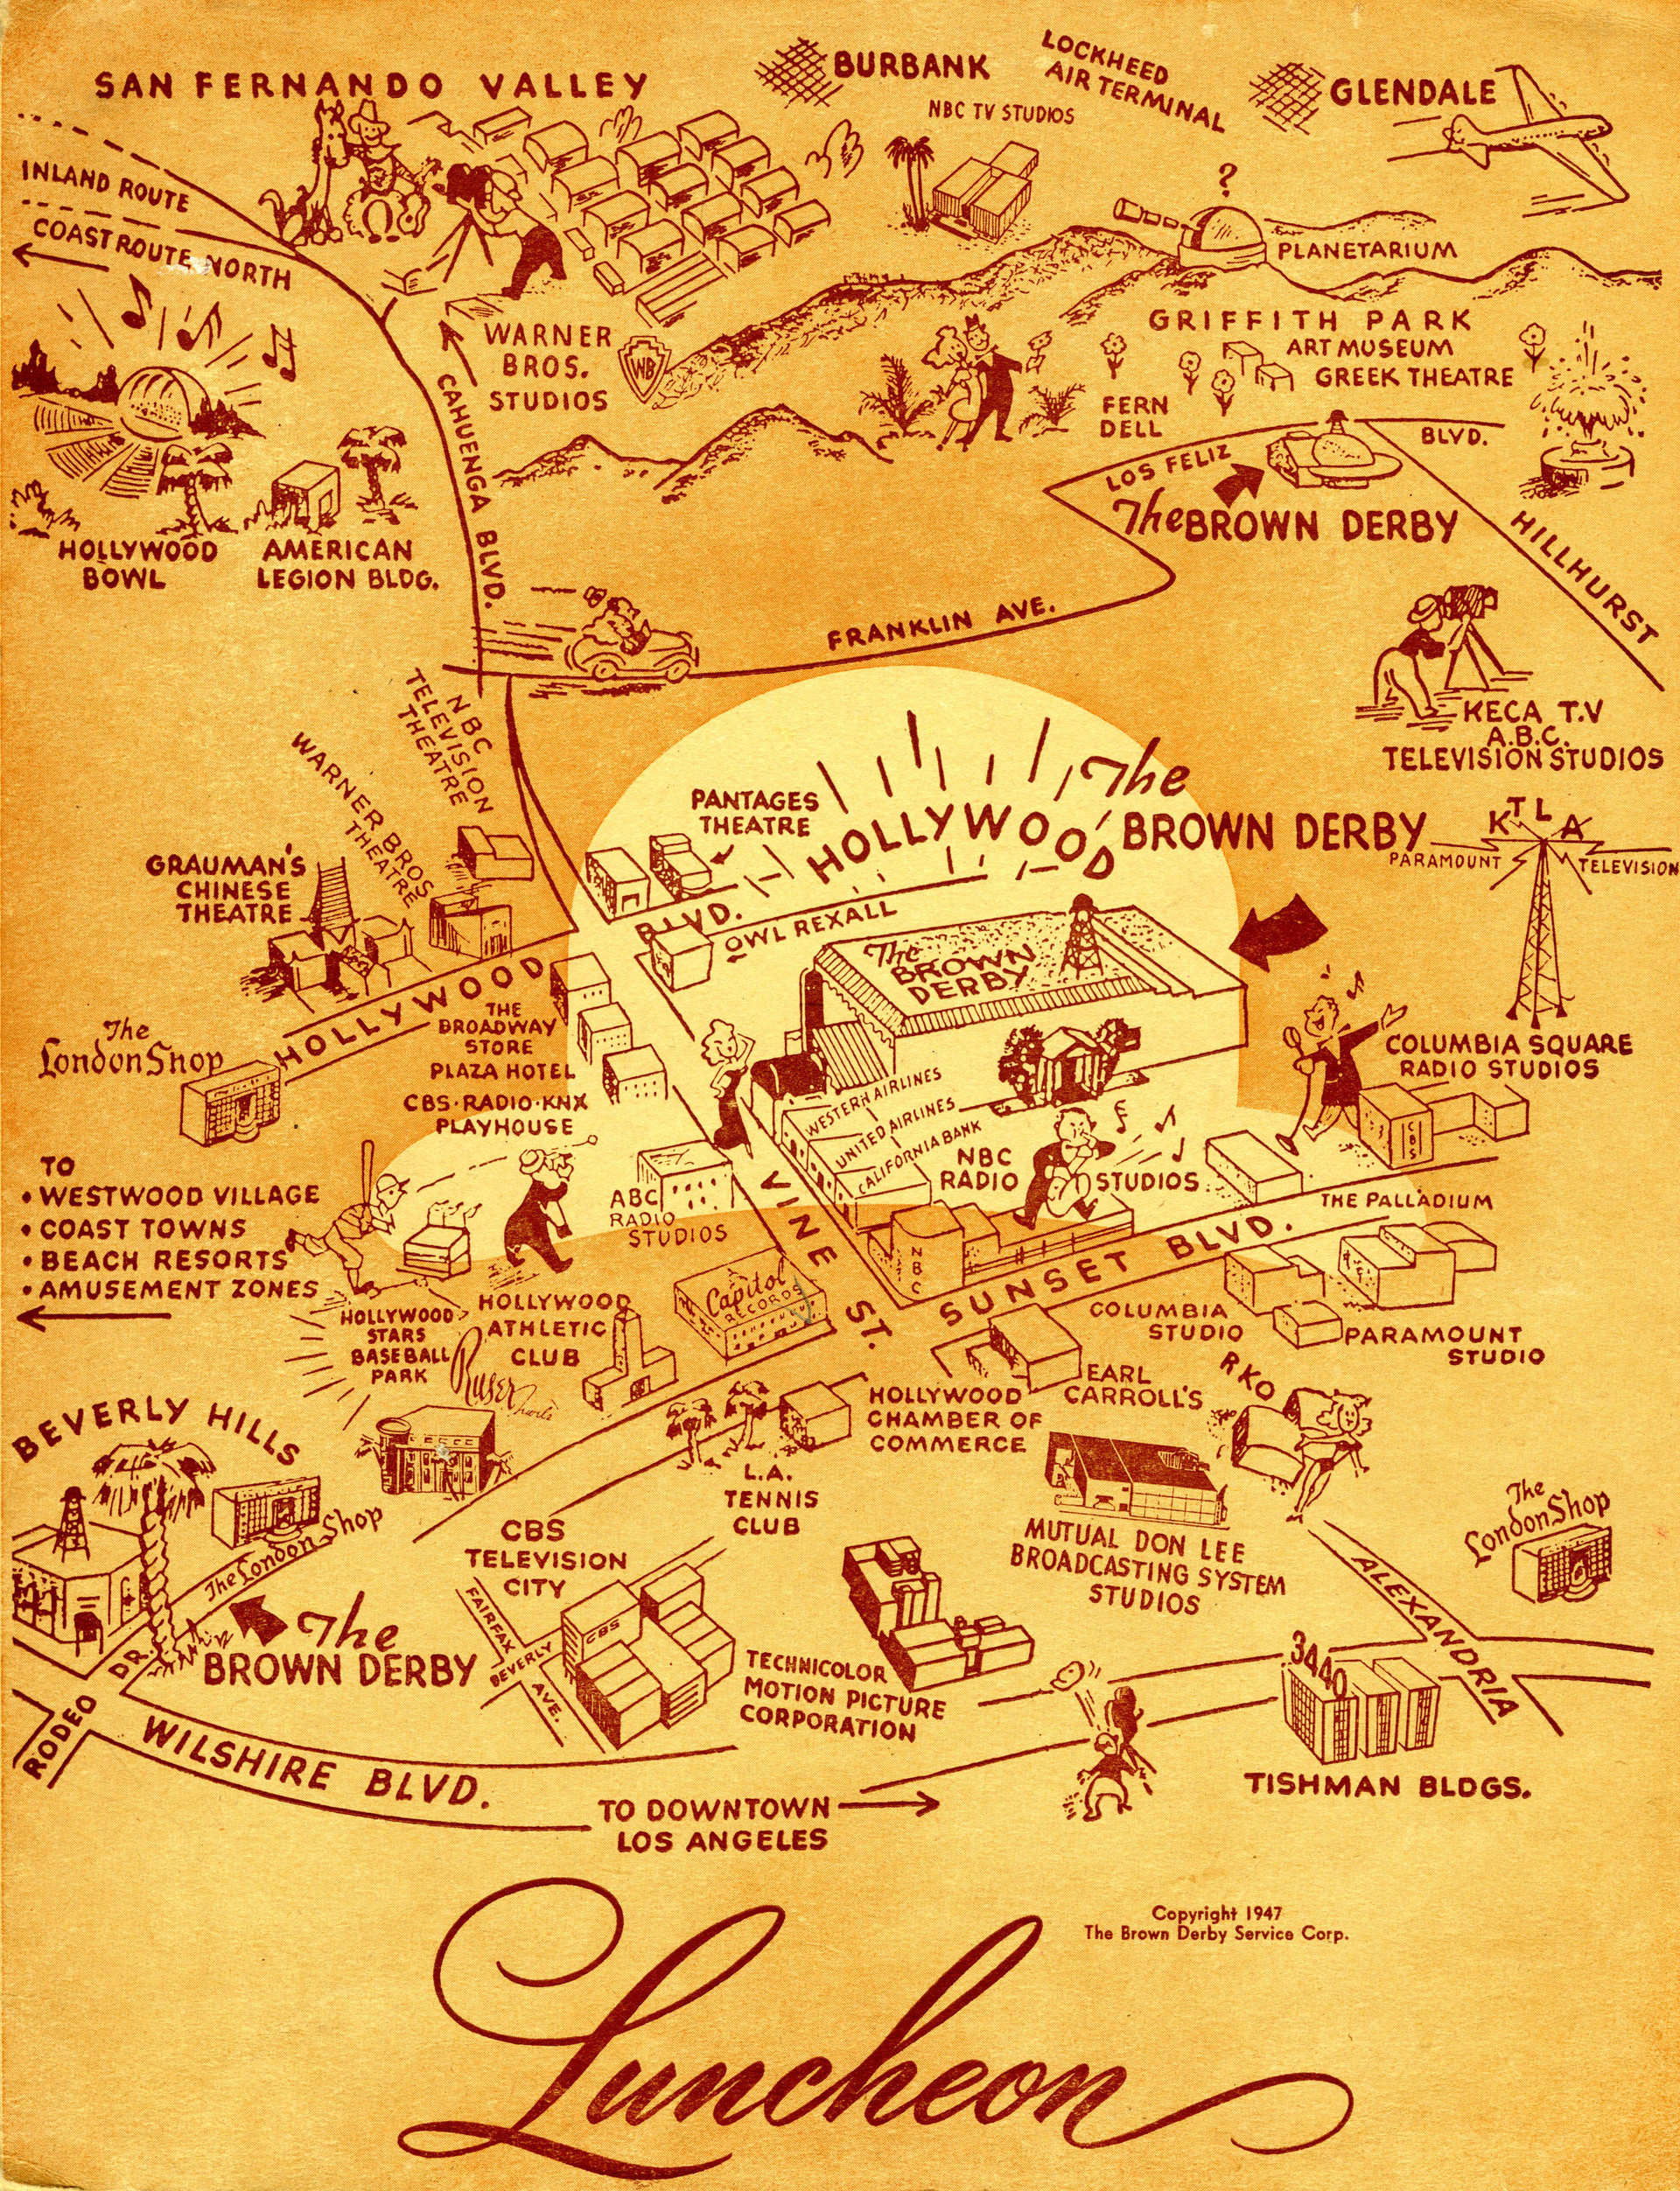 Menu cover from the Brown Derby restaurant.